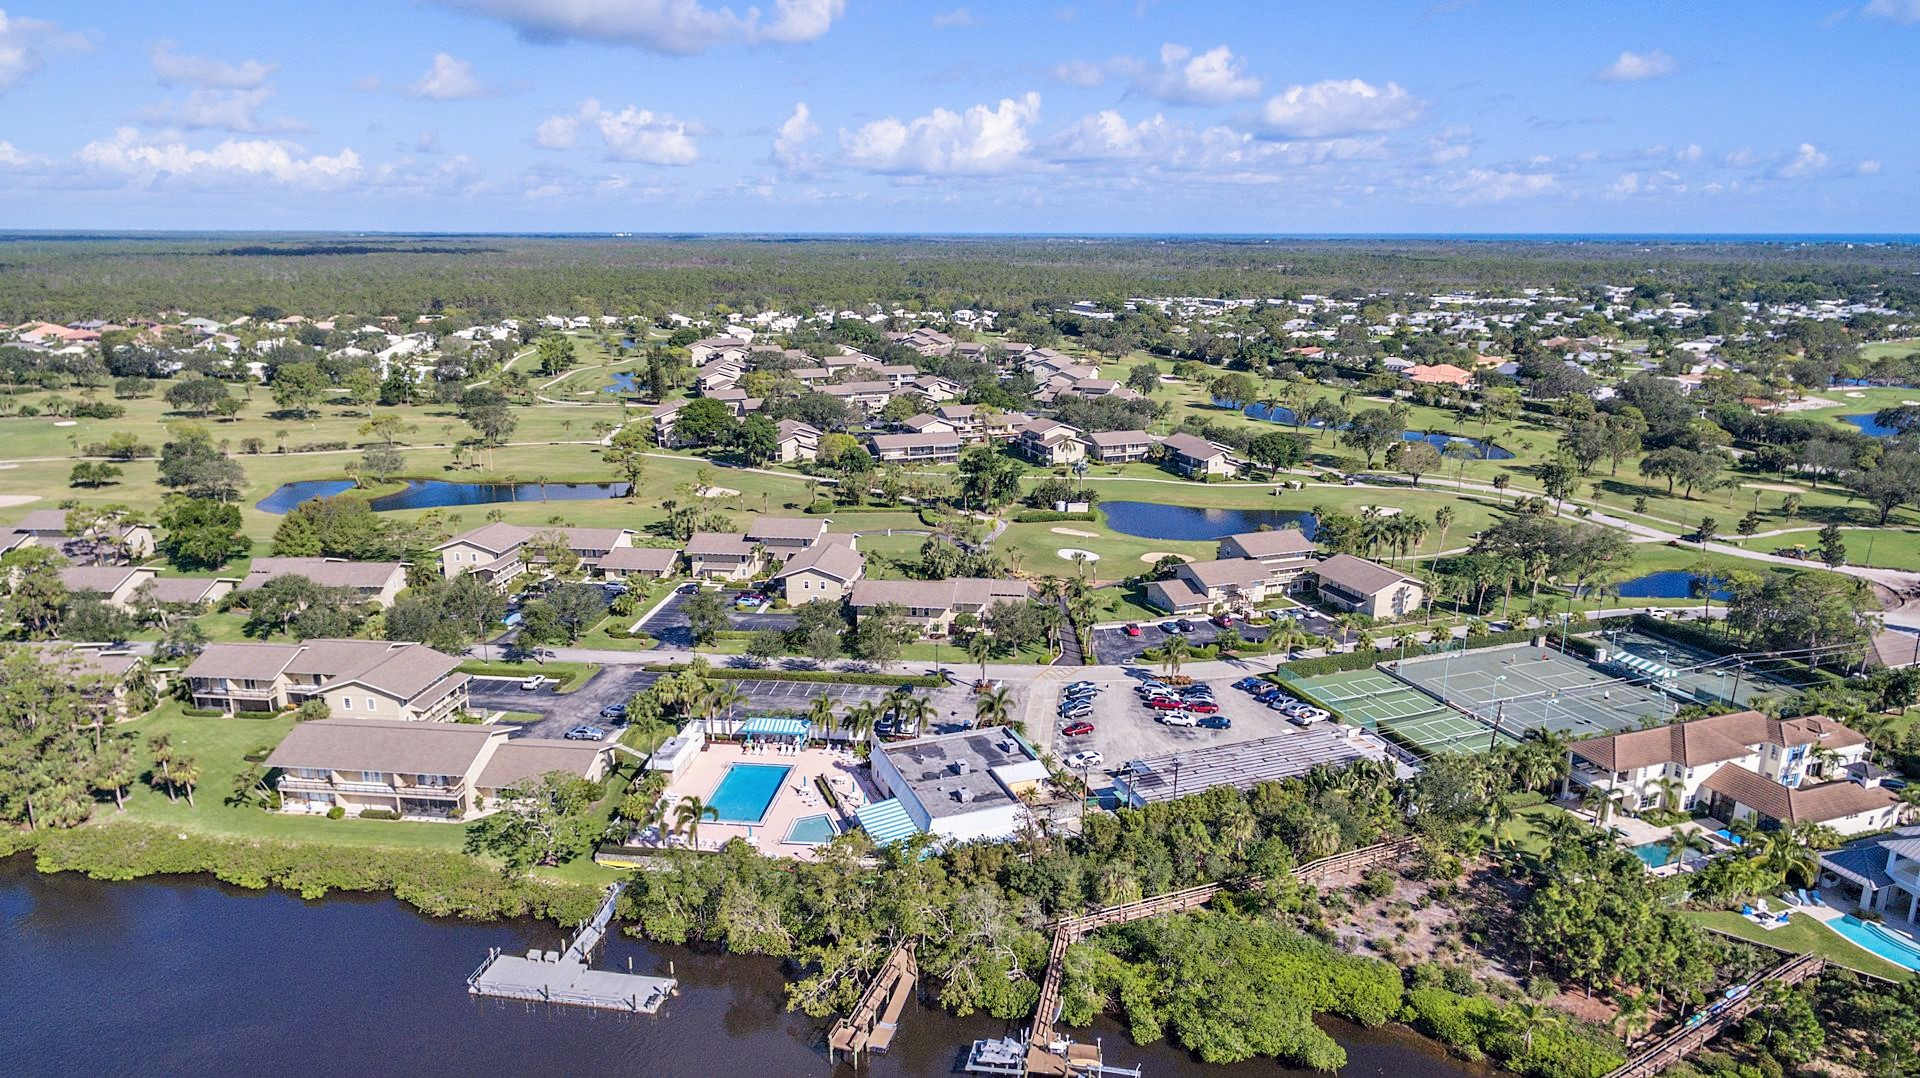 9179 SE RIVERFRONT TERRACE TEQUESTA FL 33469 THOM AND RORY TEAM